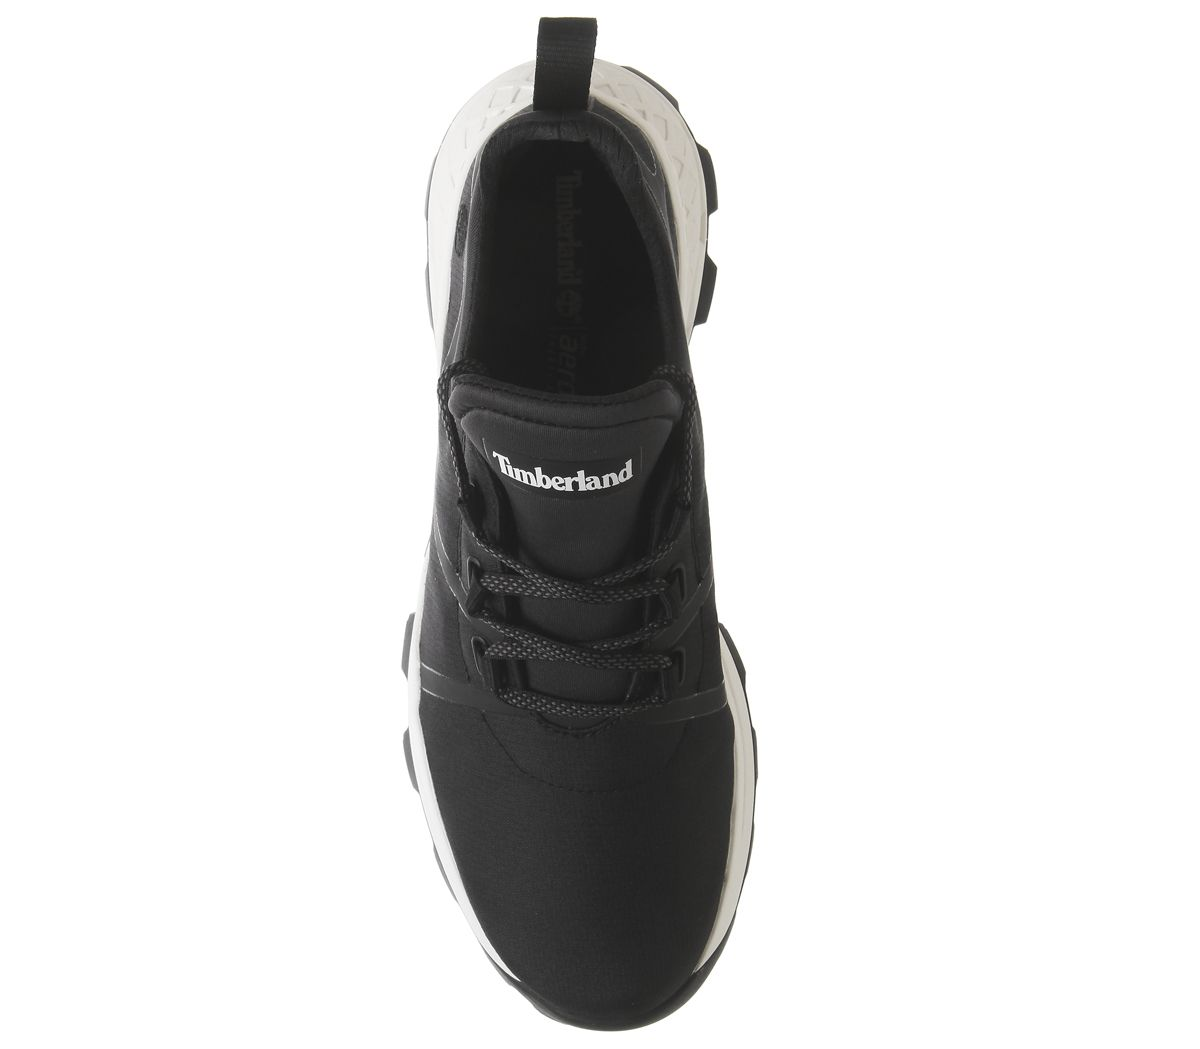 Timberland-Brooklyn-pour-homme-Tissu-Oxford-formateurs-Jet-Black-Casual-Shoes miniature 10